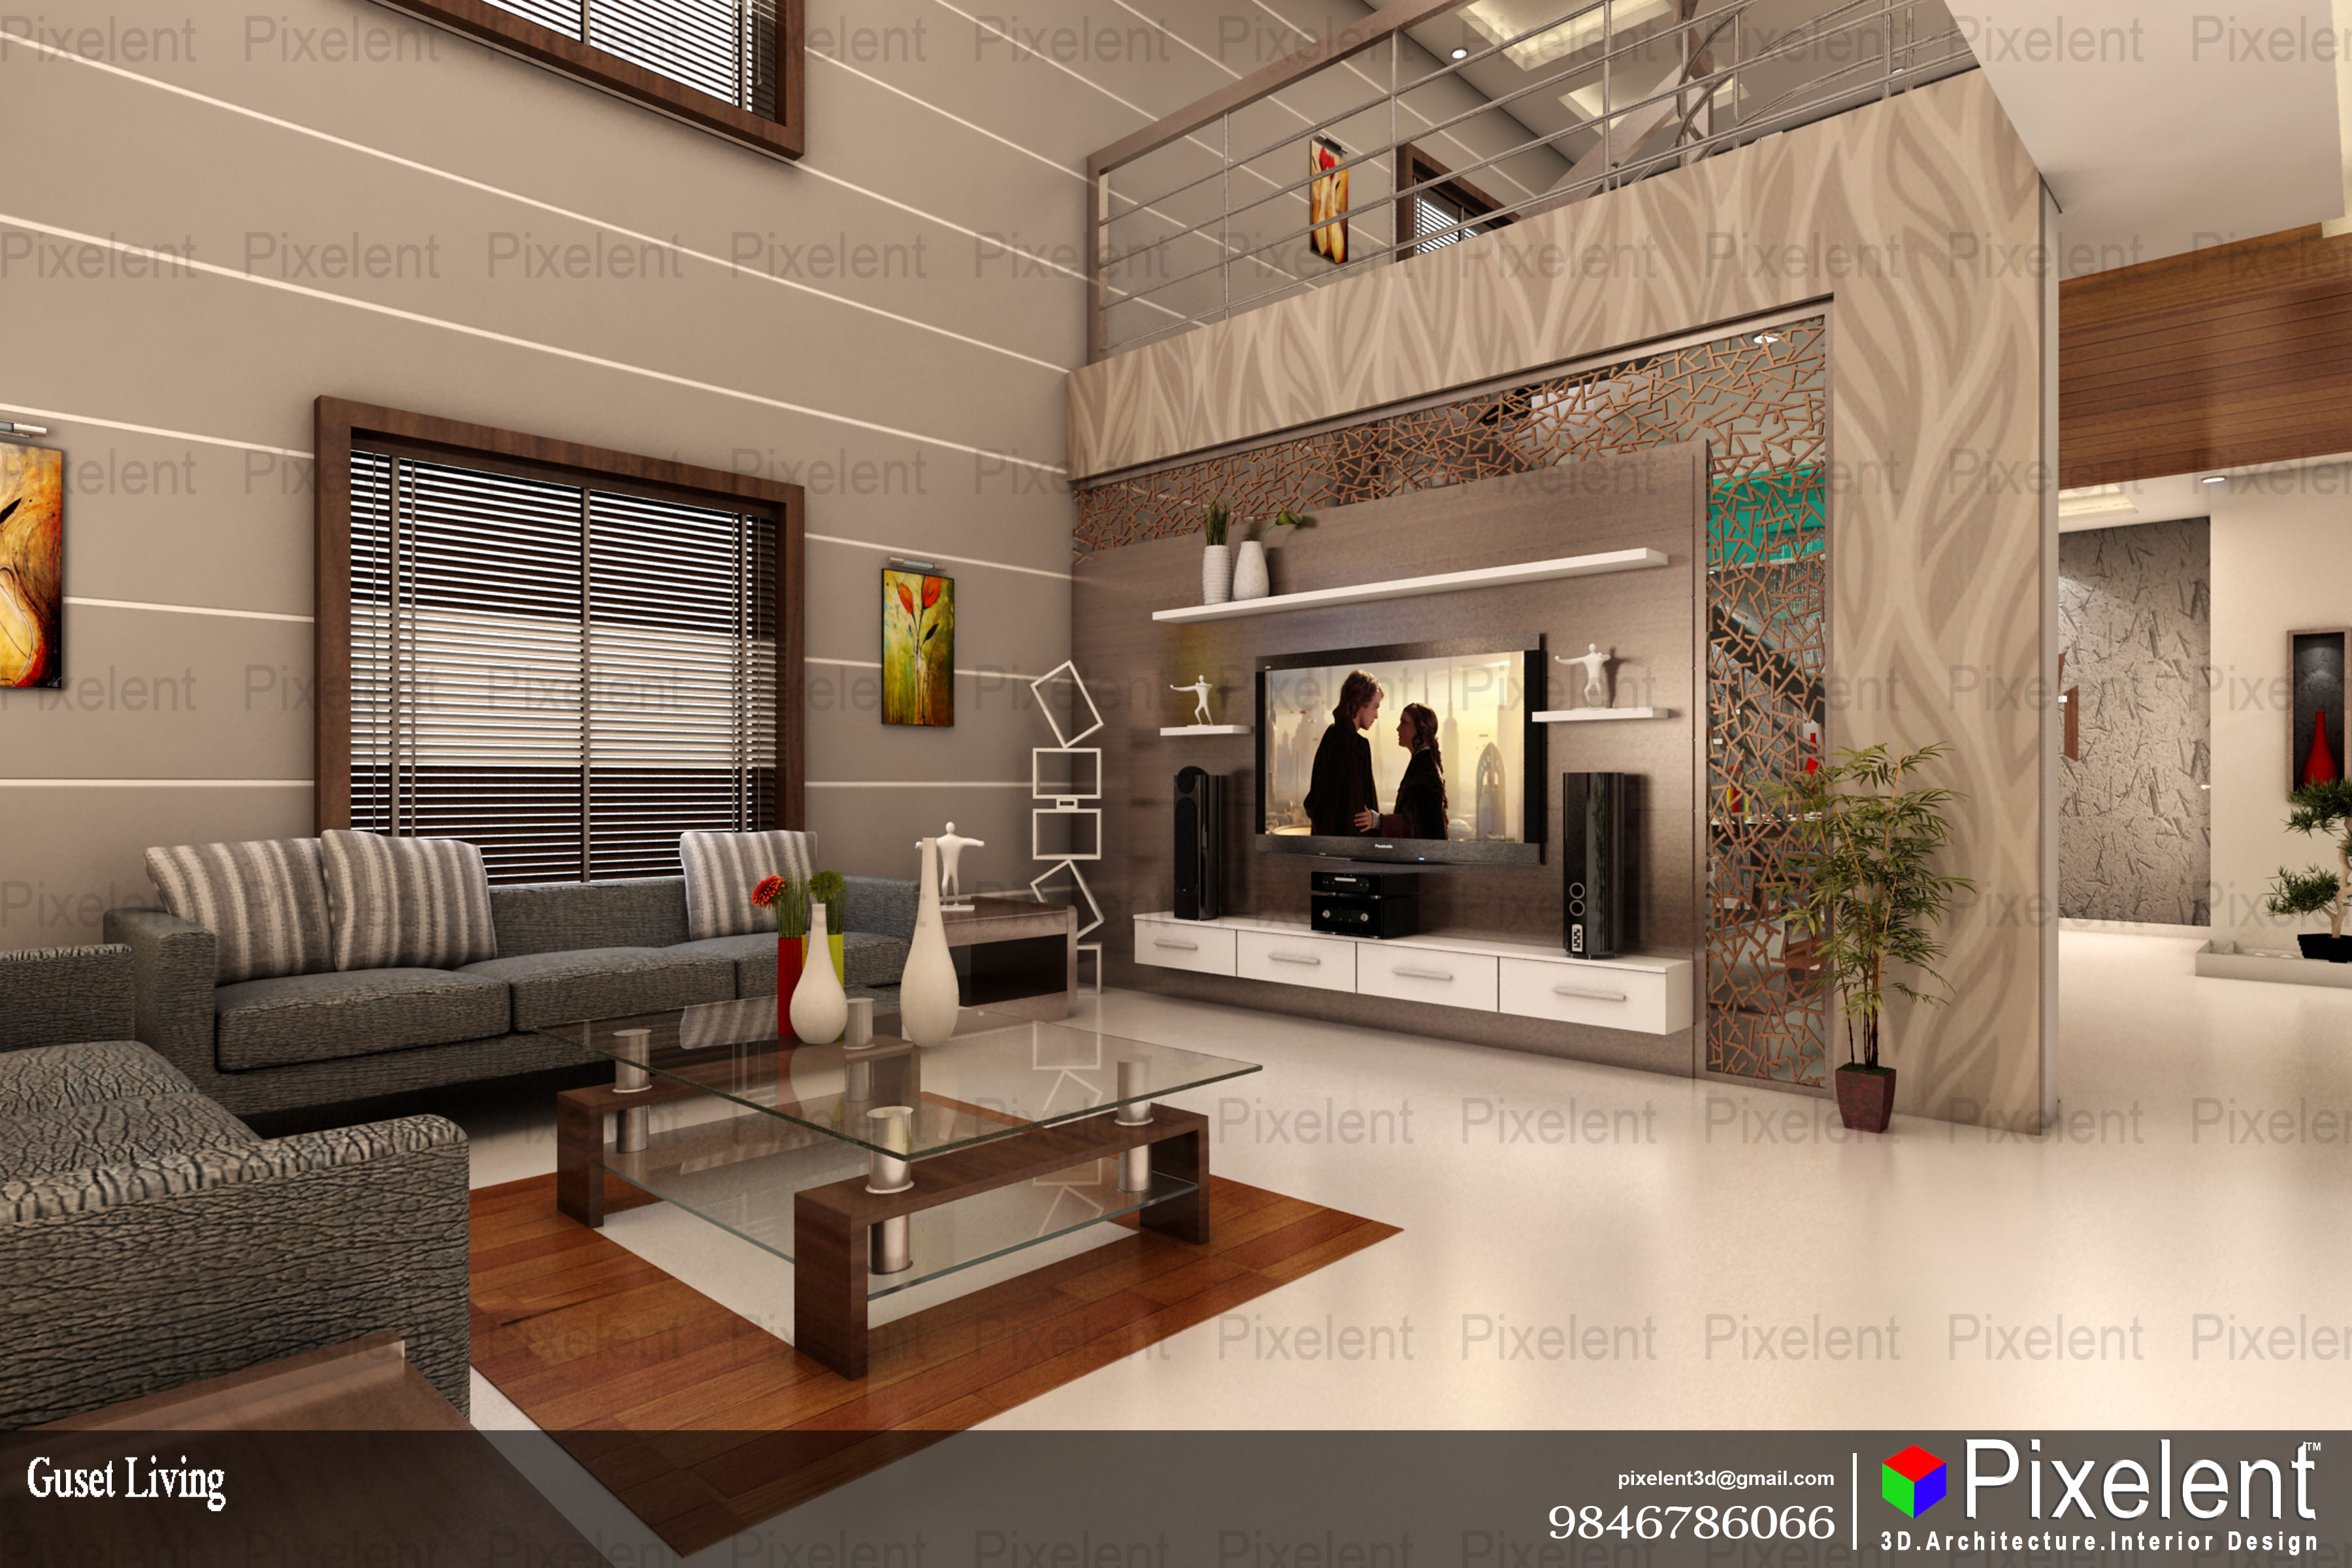 Our interior design works by pixelent 3d exterior for Interior and exterior design